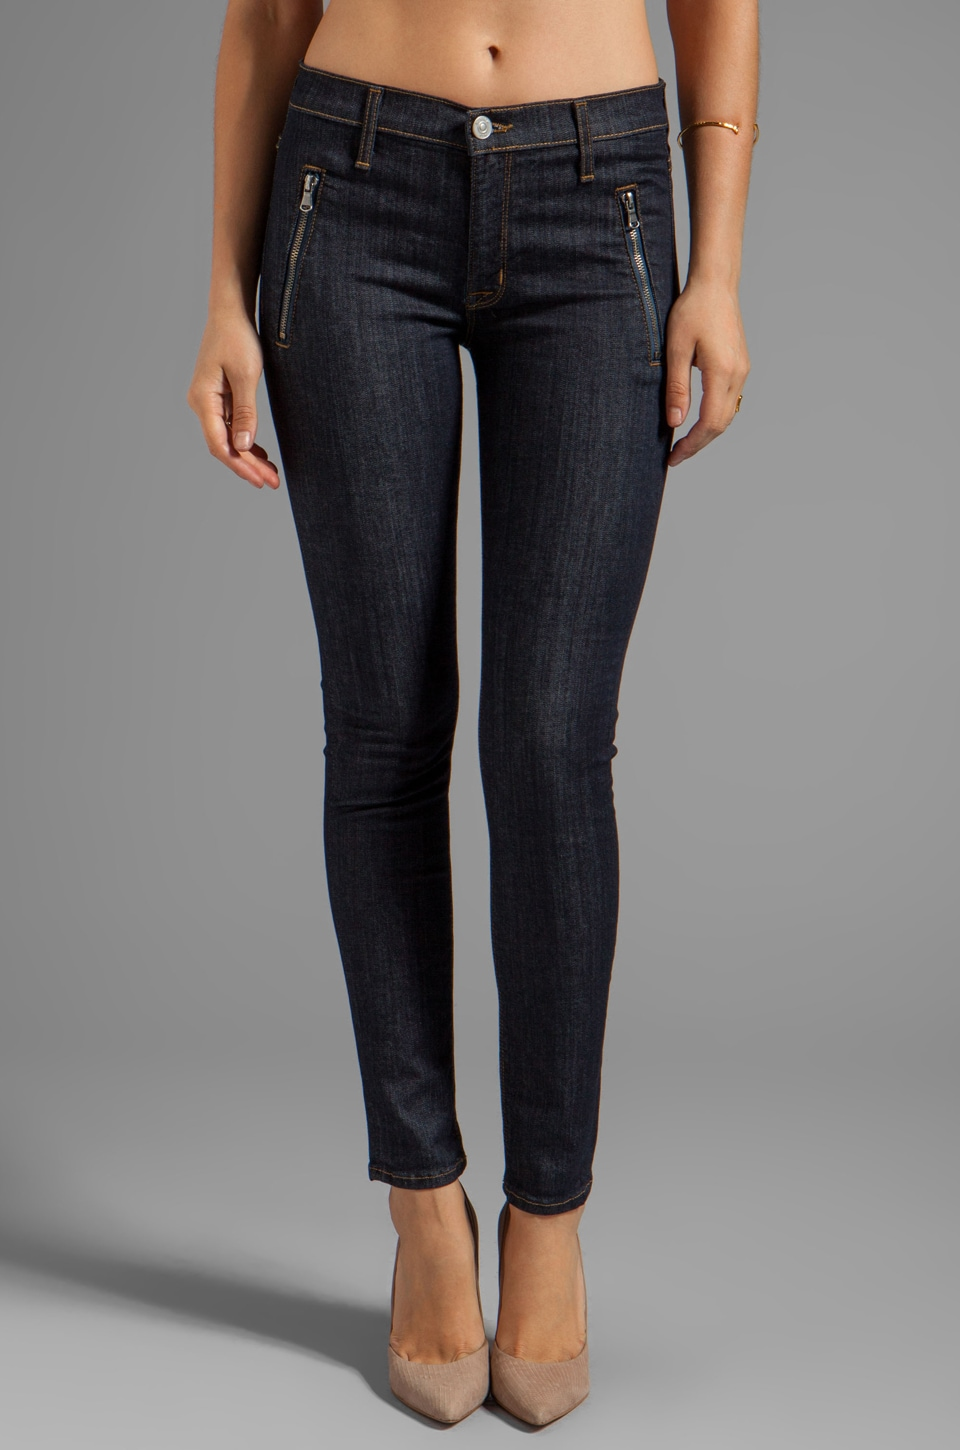 Hudson Jeans Charlotte in Foley